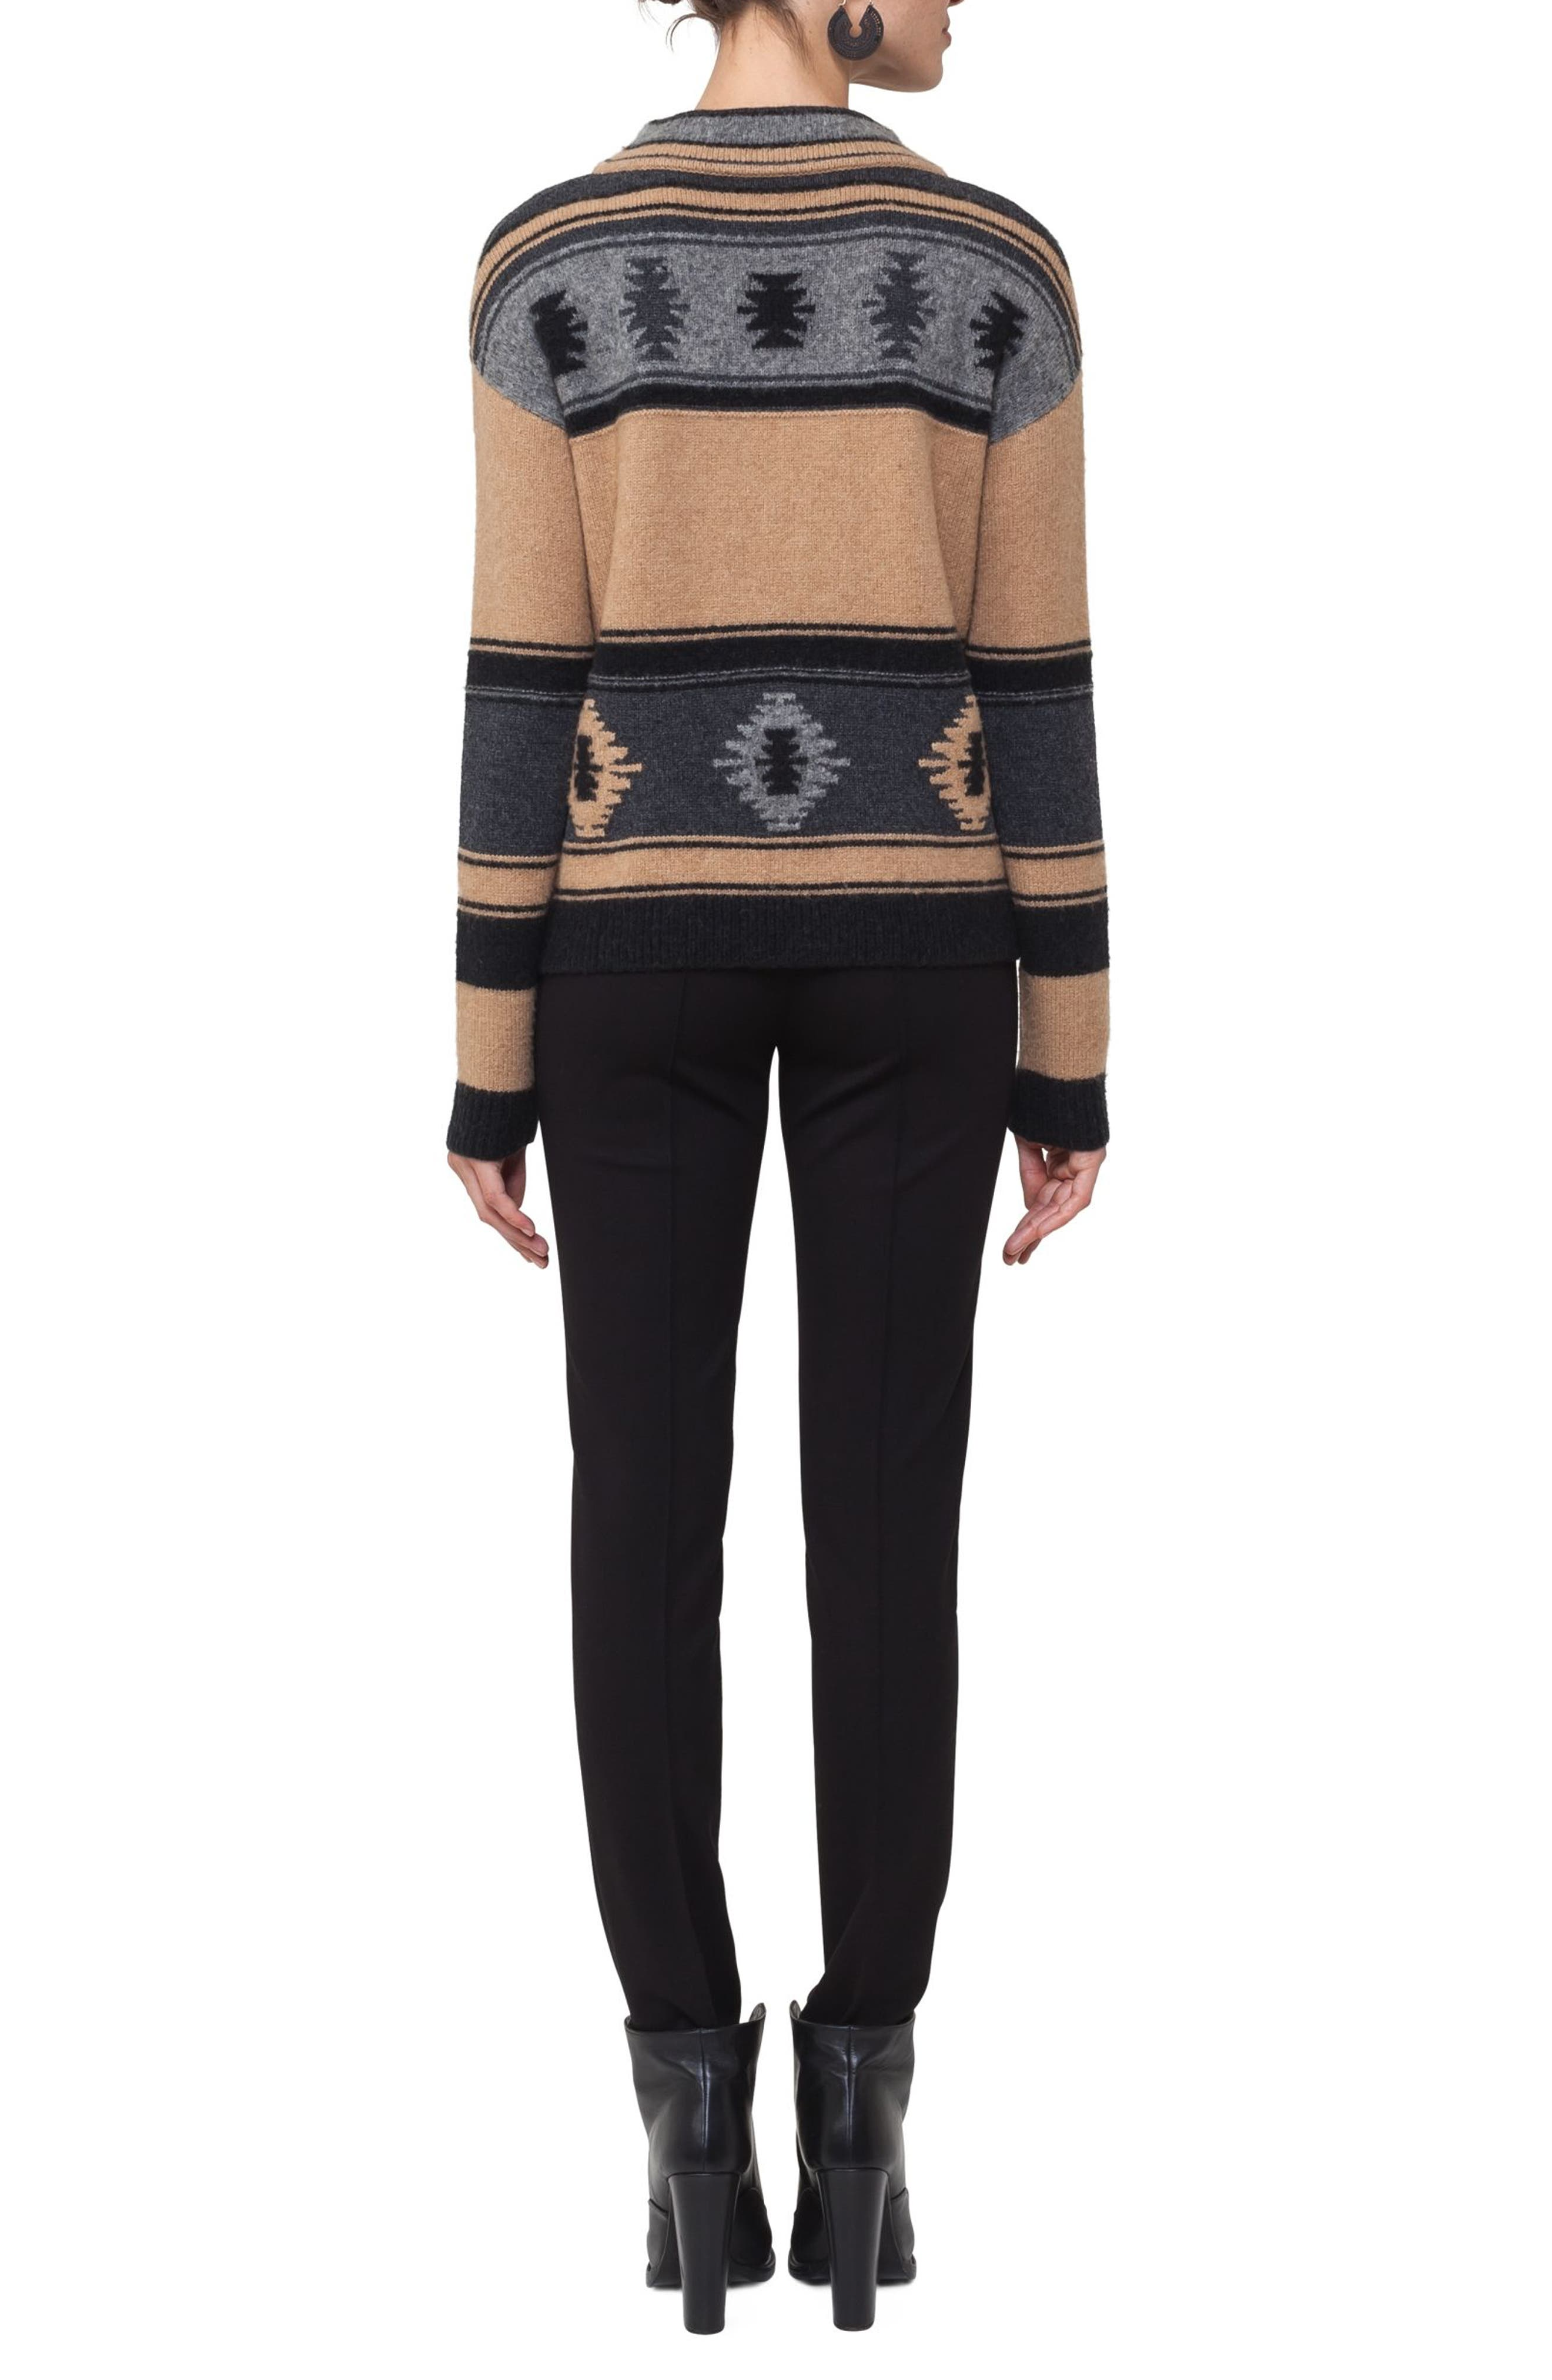 Wool Blend Pullover,                             Alternate thumbnail 2, color,                             Vicunia/ Stone/ Black